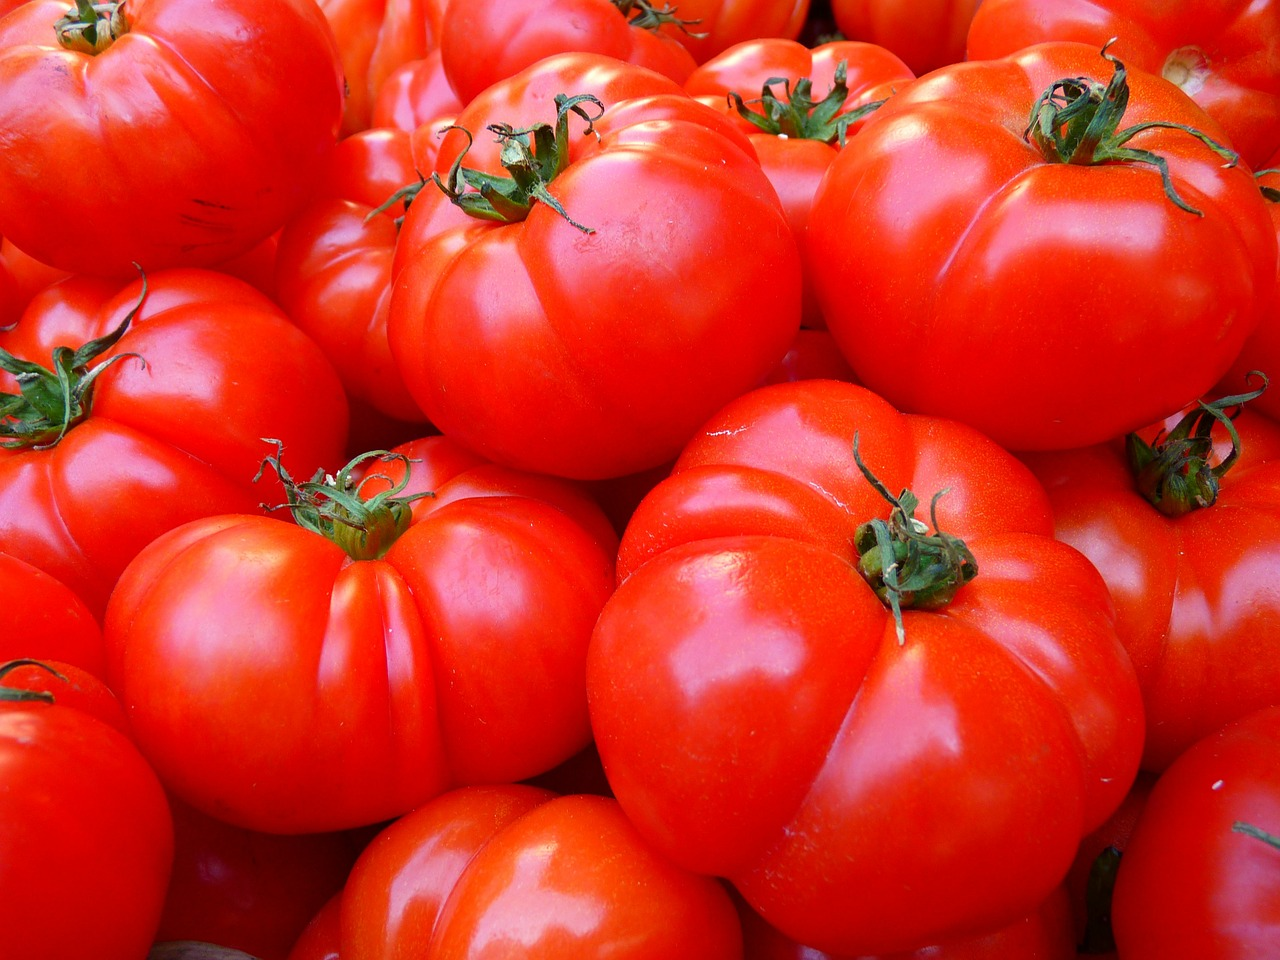 Healthy Food Tomatoes